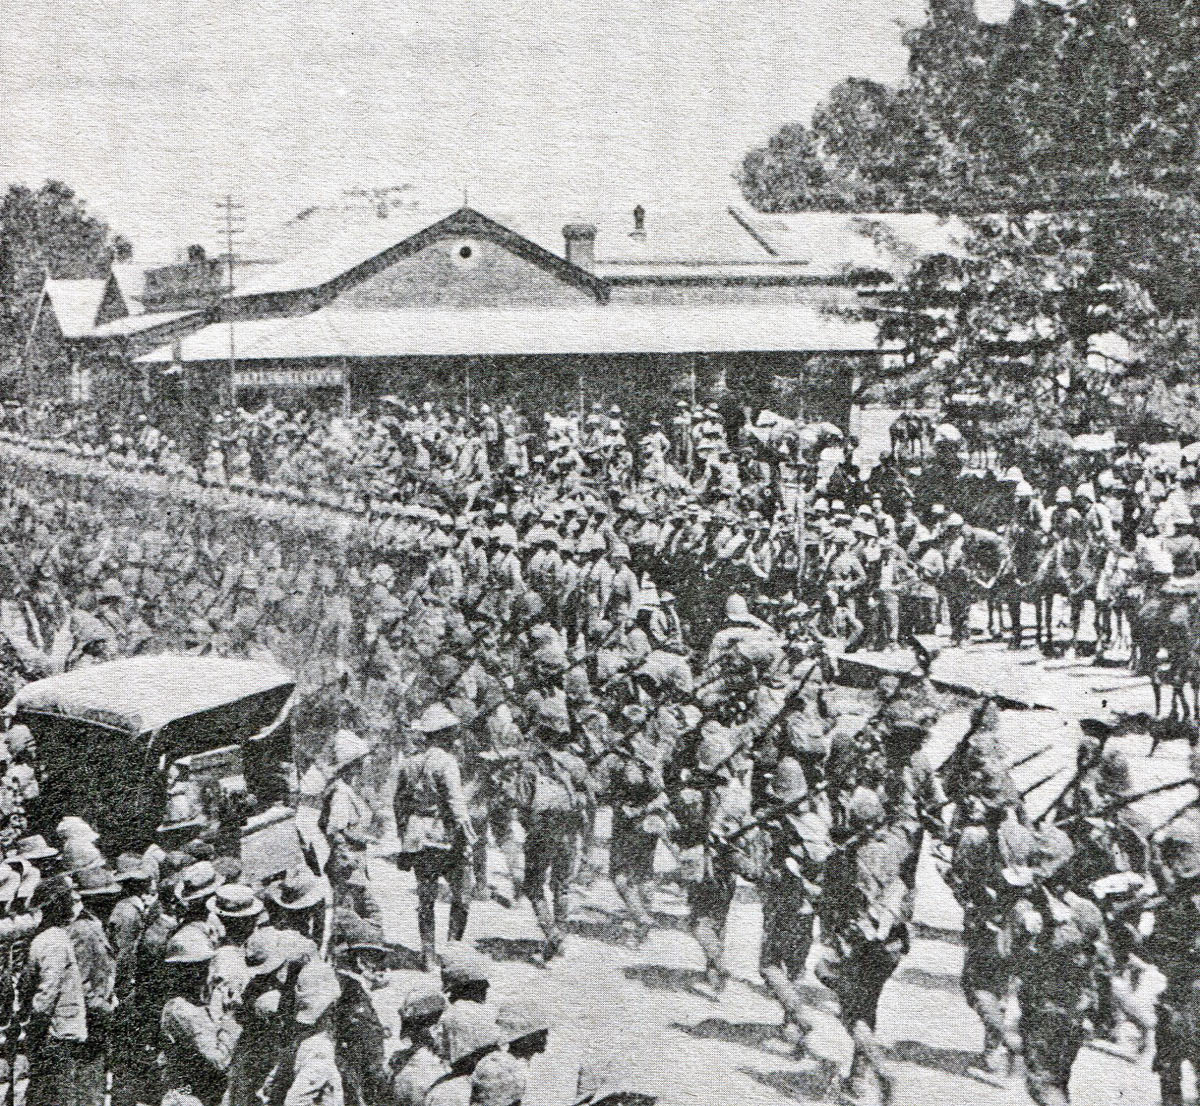 Buller's army entering Ladysmith after the Battles of Val Krantz and Pieters 5th to 28th February 1900 in the Great Boer War